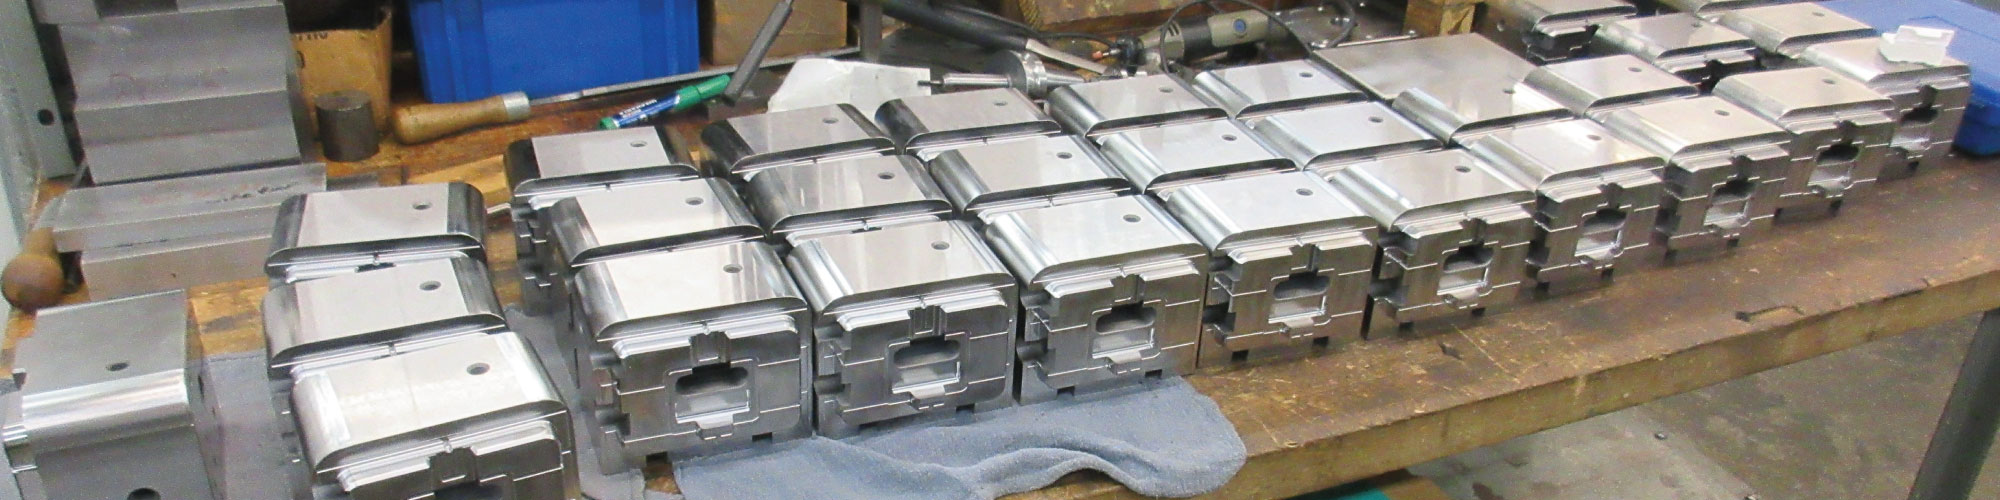 injection-molding-mcminnivlle-tn